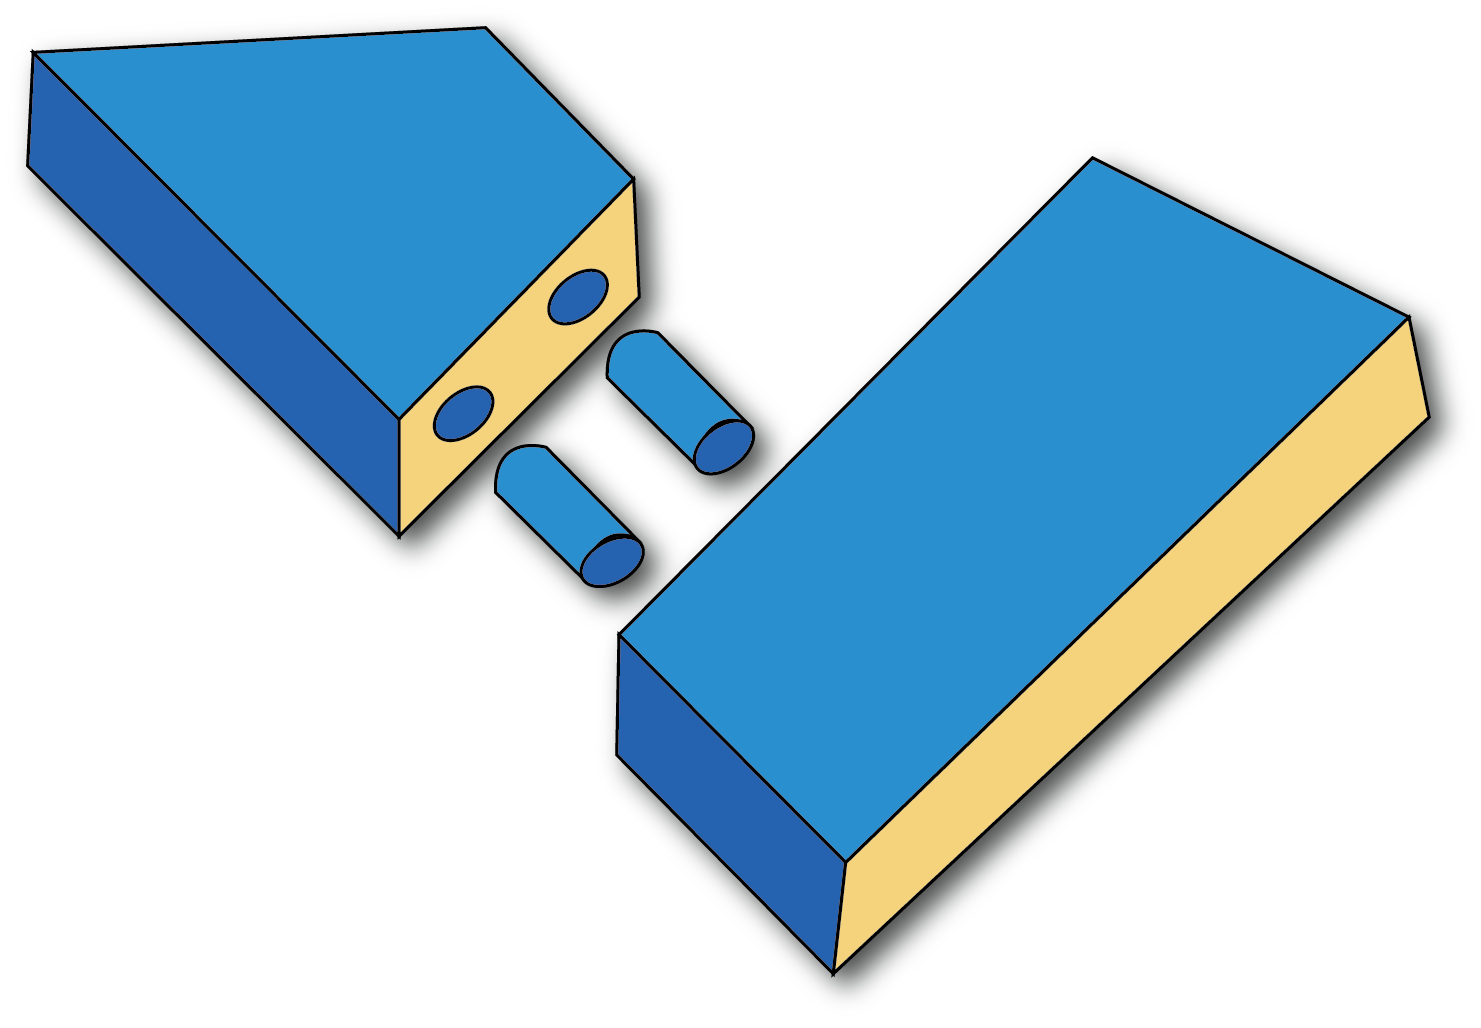 A diagram of a dowelled joint.